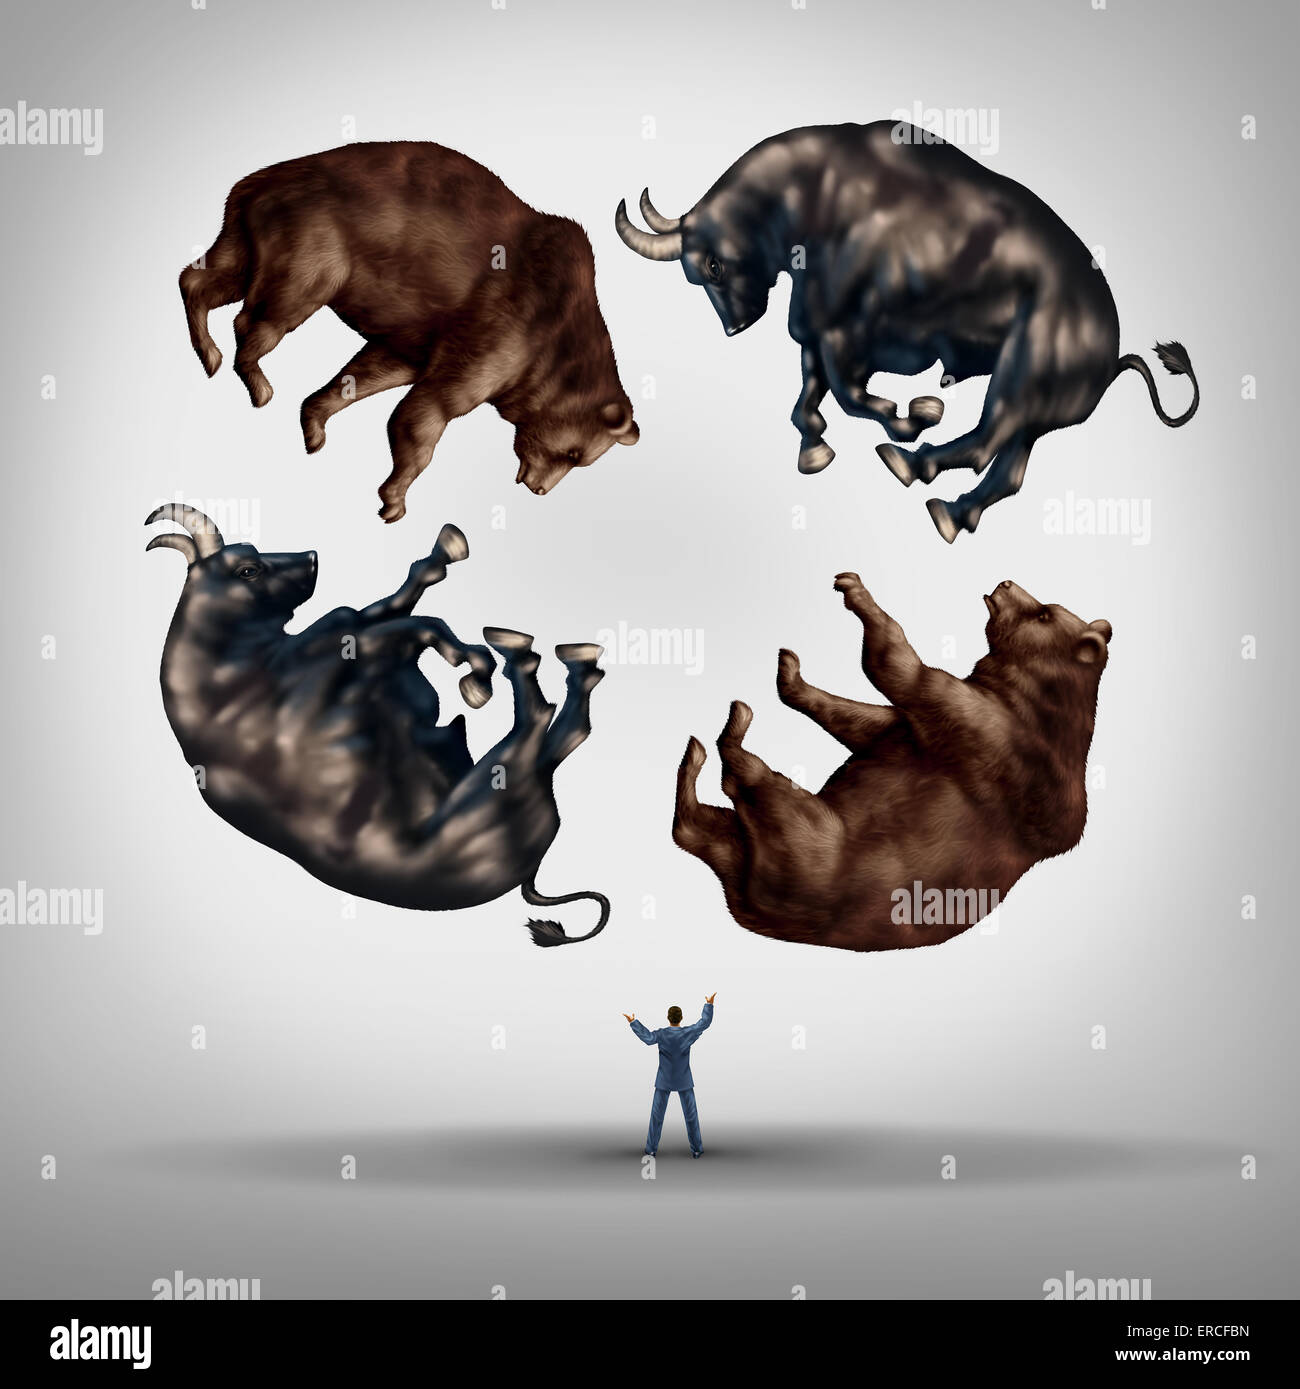 Investing in stocks concept as a financial advisor or stock broker businessman juggling a group of bears and bulls - Stock Image